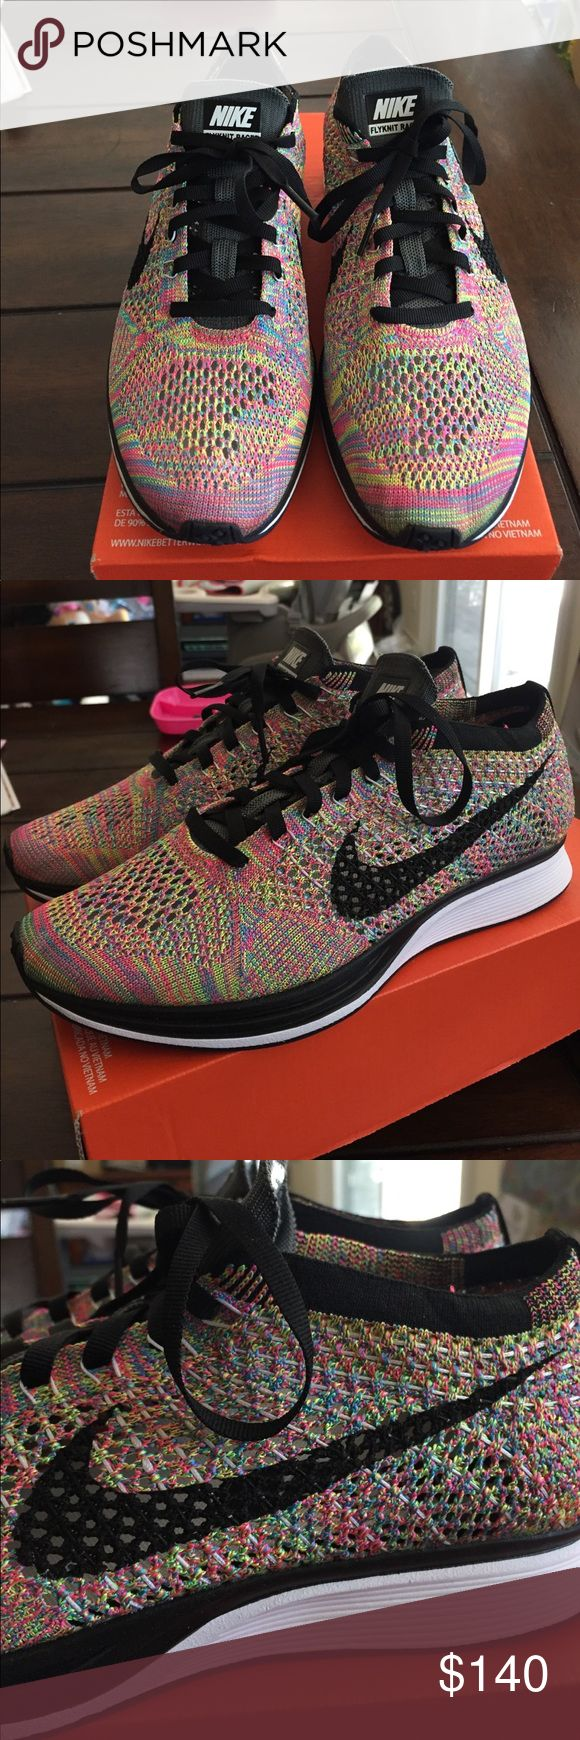 New Nike Multicolor Flyknit Racer! New Nike Flyknit Racer! Size 6.5 Men's 8 in Women's. Comes in a box without the lid with part of the label ripped off.  Released in 2016 with the grey tongue. Nike Shoes Athletic Shoes